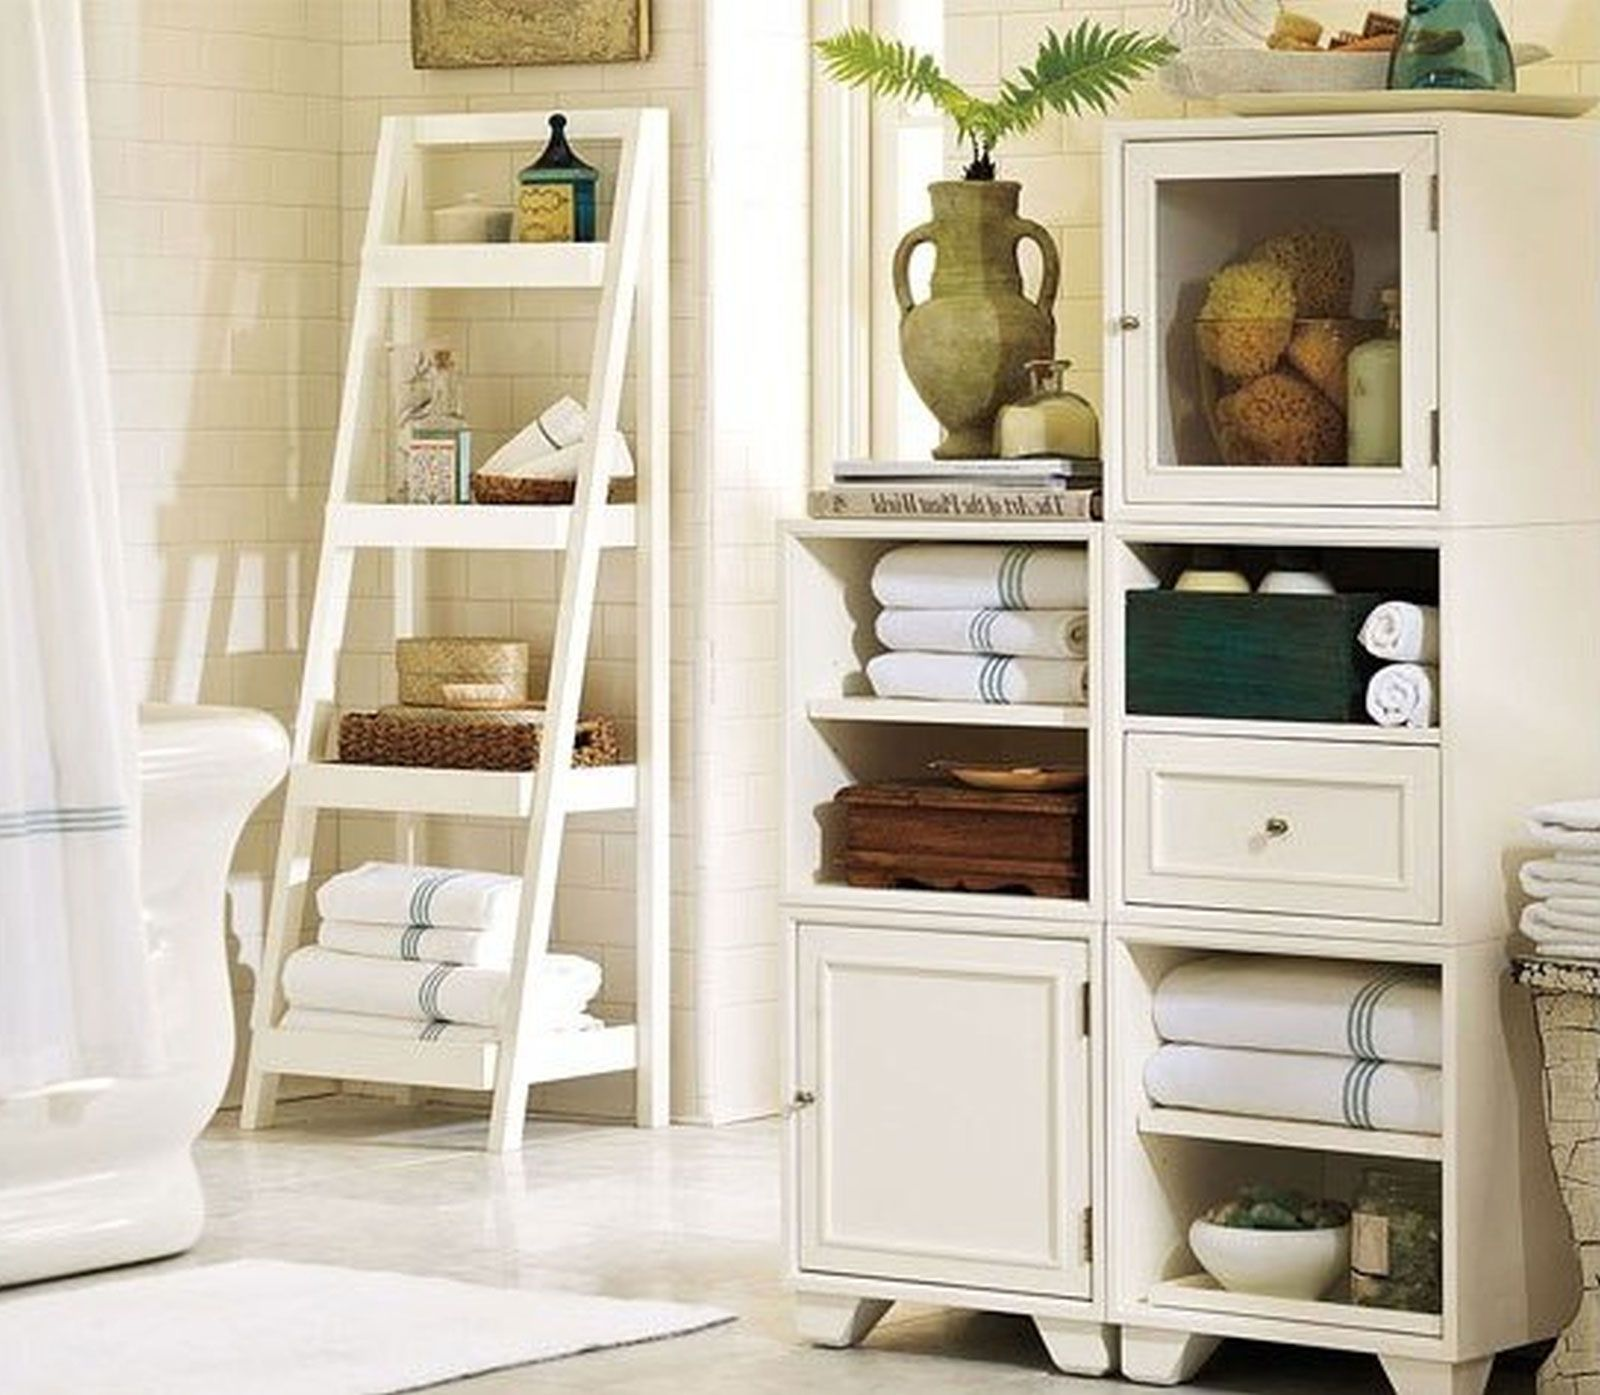 Another storage idea for large wall in master bath | Bathroom ... for bathroom cupboard storage ideas  157uhy